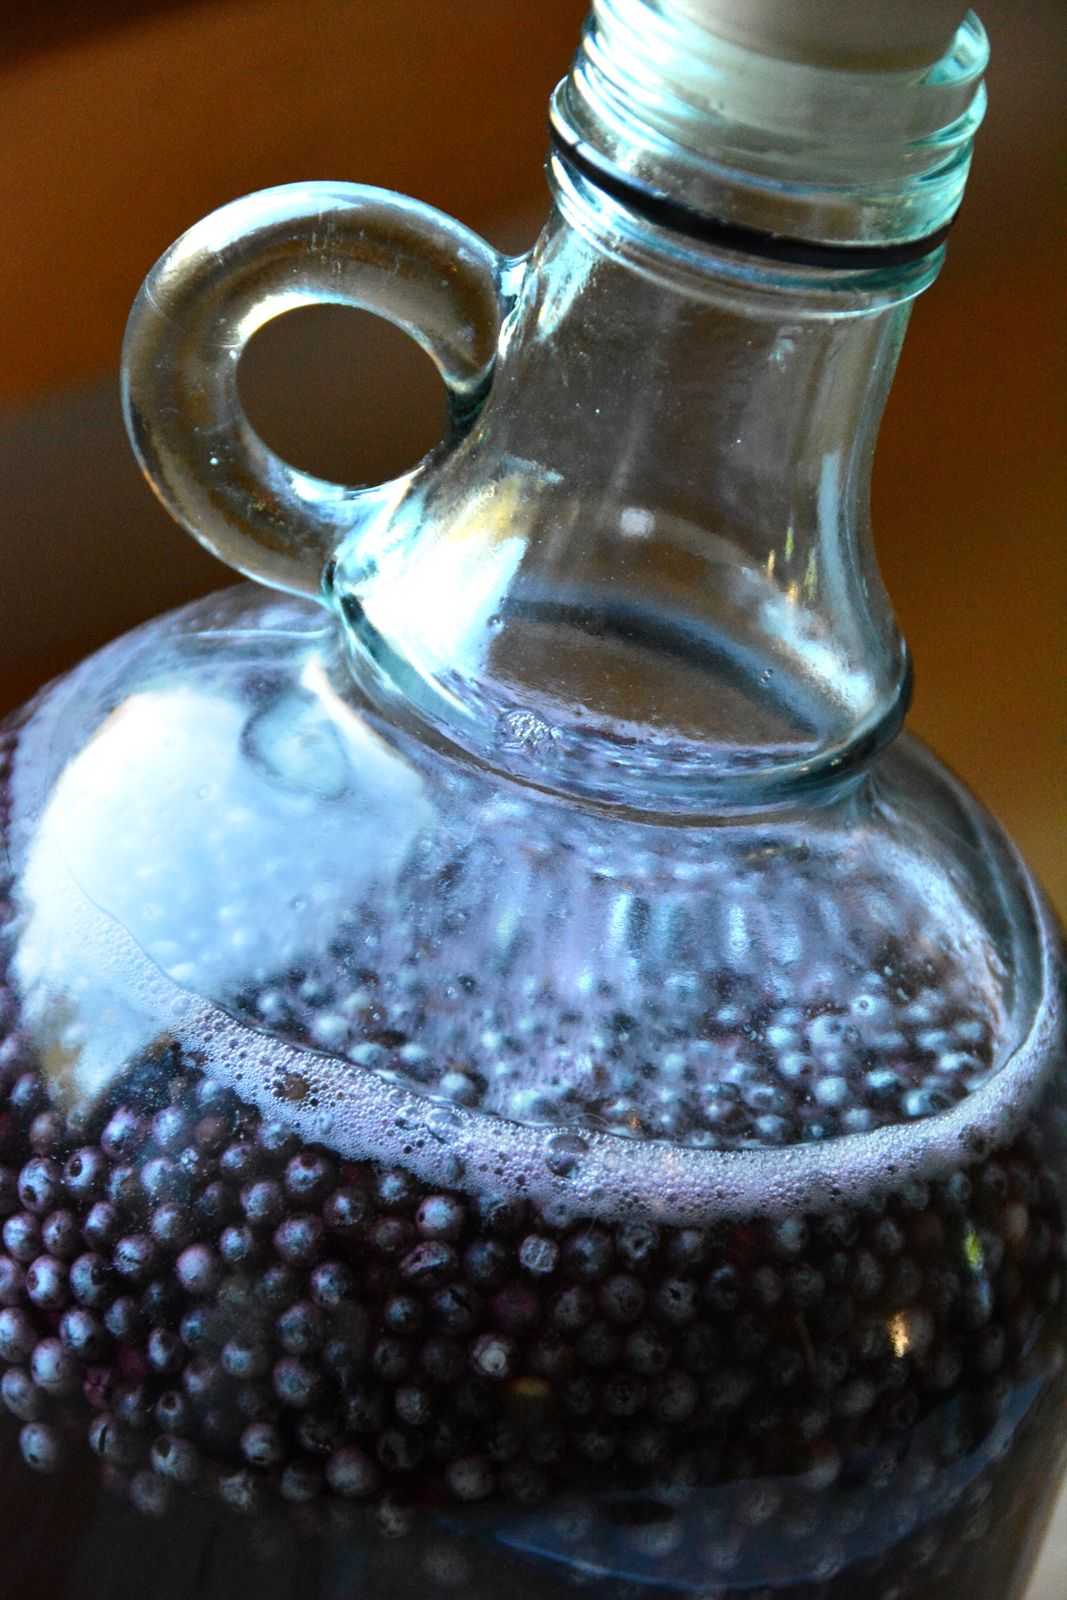 Beautiful Wild Fermentation Used Yeast From Elderberry Bloom White Coating On The Berries In